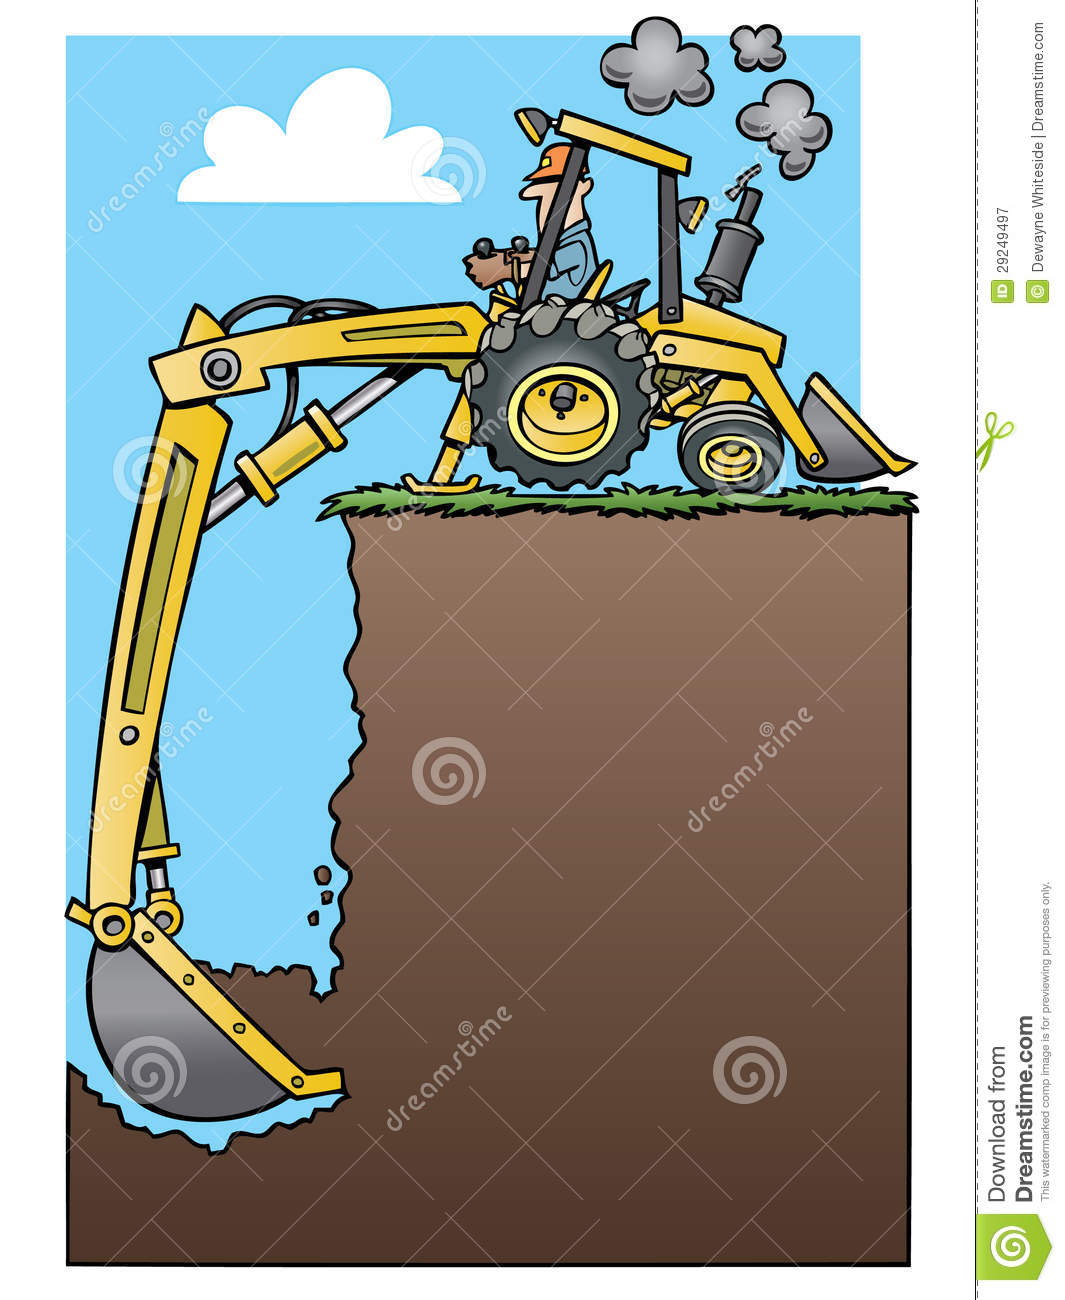 Backhoe Tractor Digging A Deep Hole Royalty Free Stock